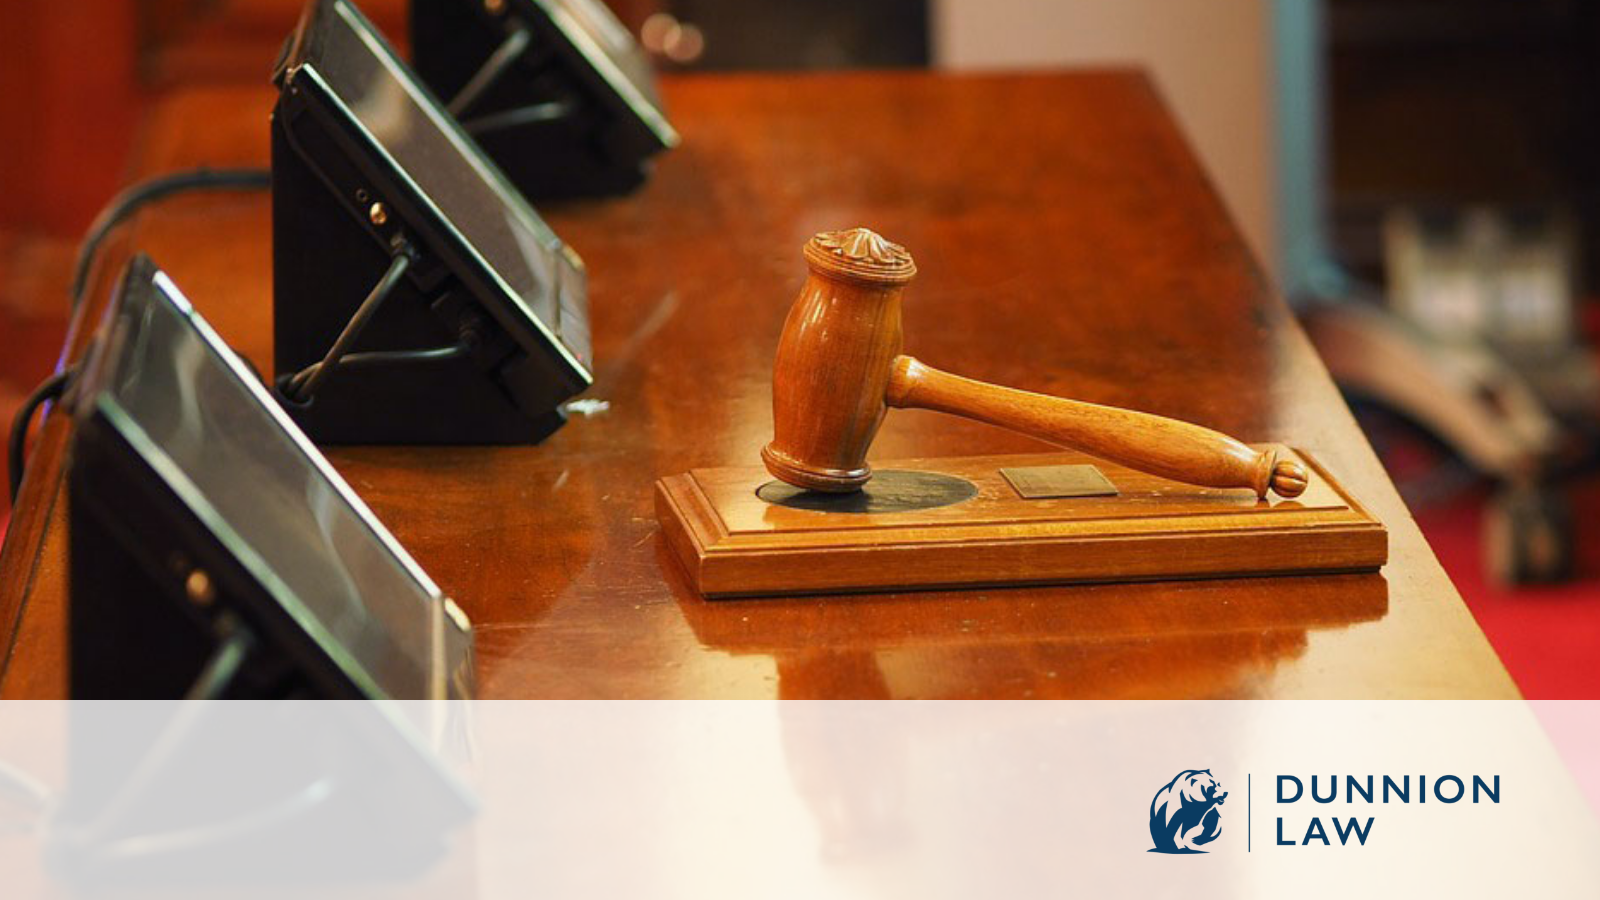 Stock photo of a gavel in a courtroom.